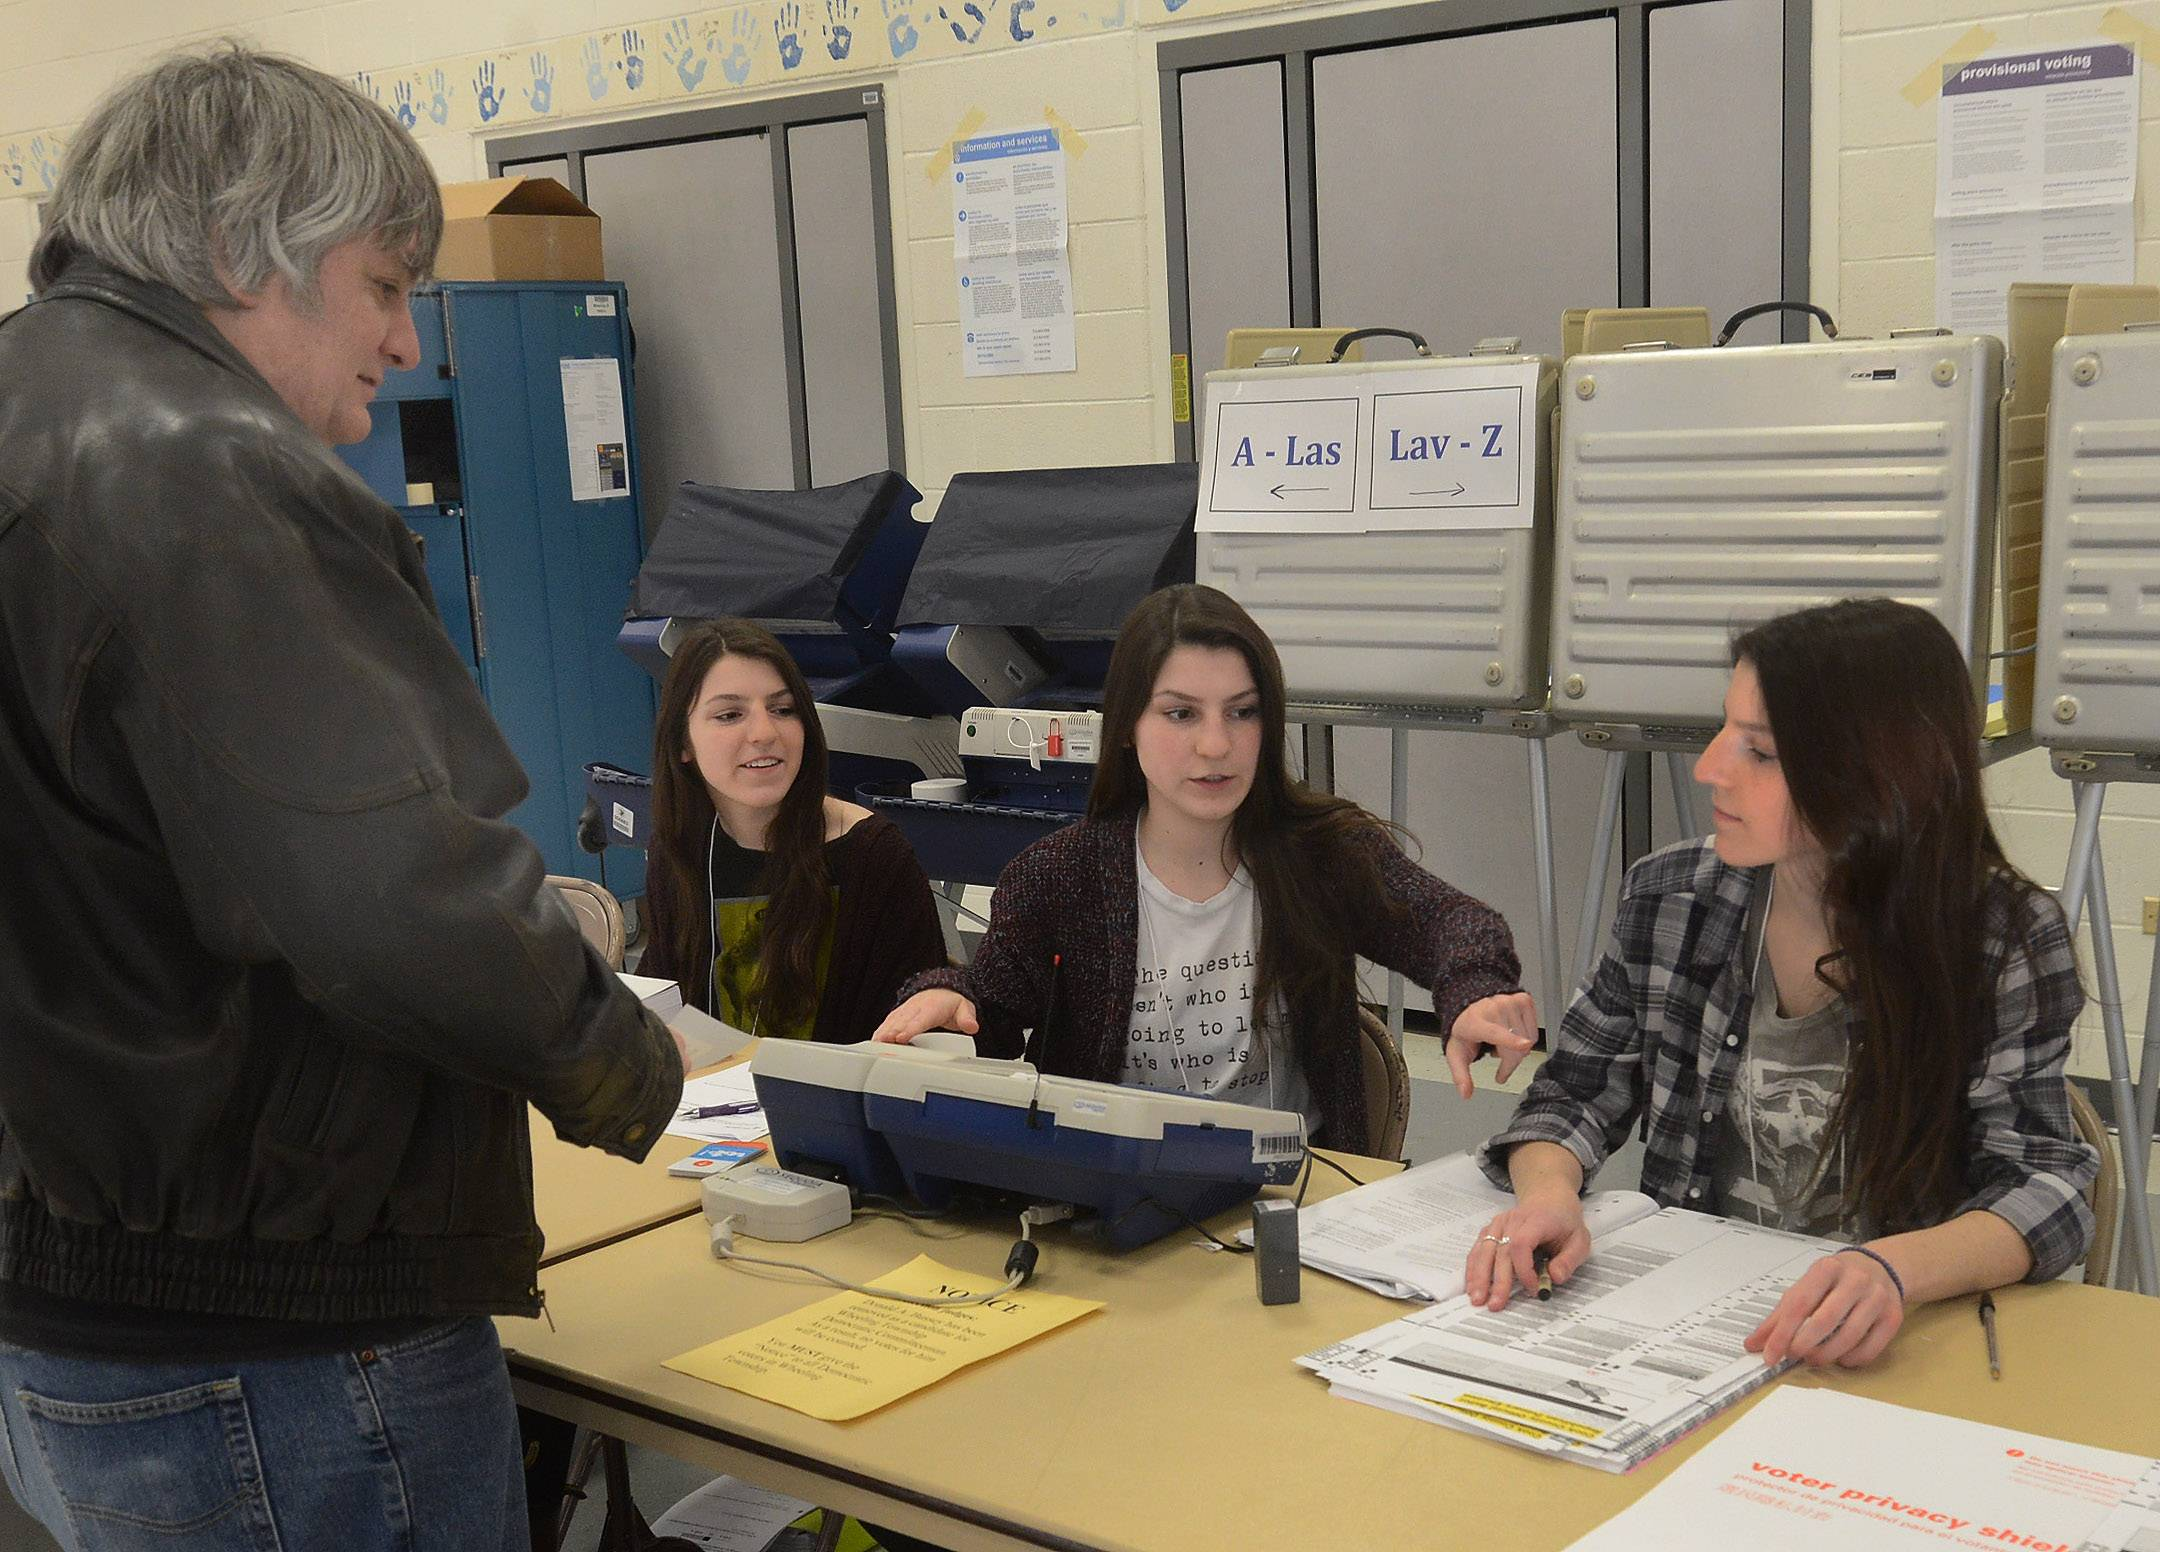 Triplets, from left, Frances Ponicki, Theresa Ponicki and Mary Ponicki, issue a ballot to Russell Butler of Arlington Heights at the Riley Elementary School polling place in Arlington Heights last week. The 17-year-old Prospect High School students worked as election judges for the Illinois primary.